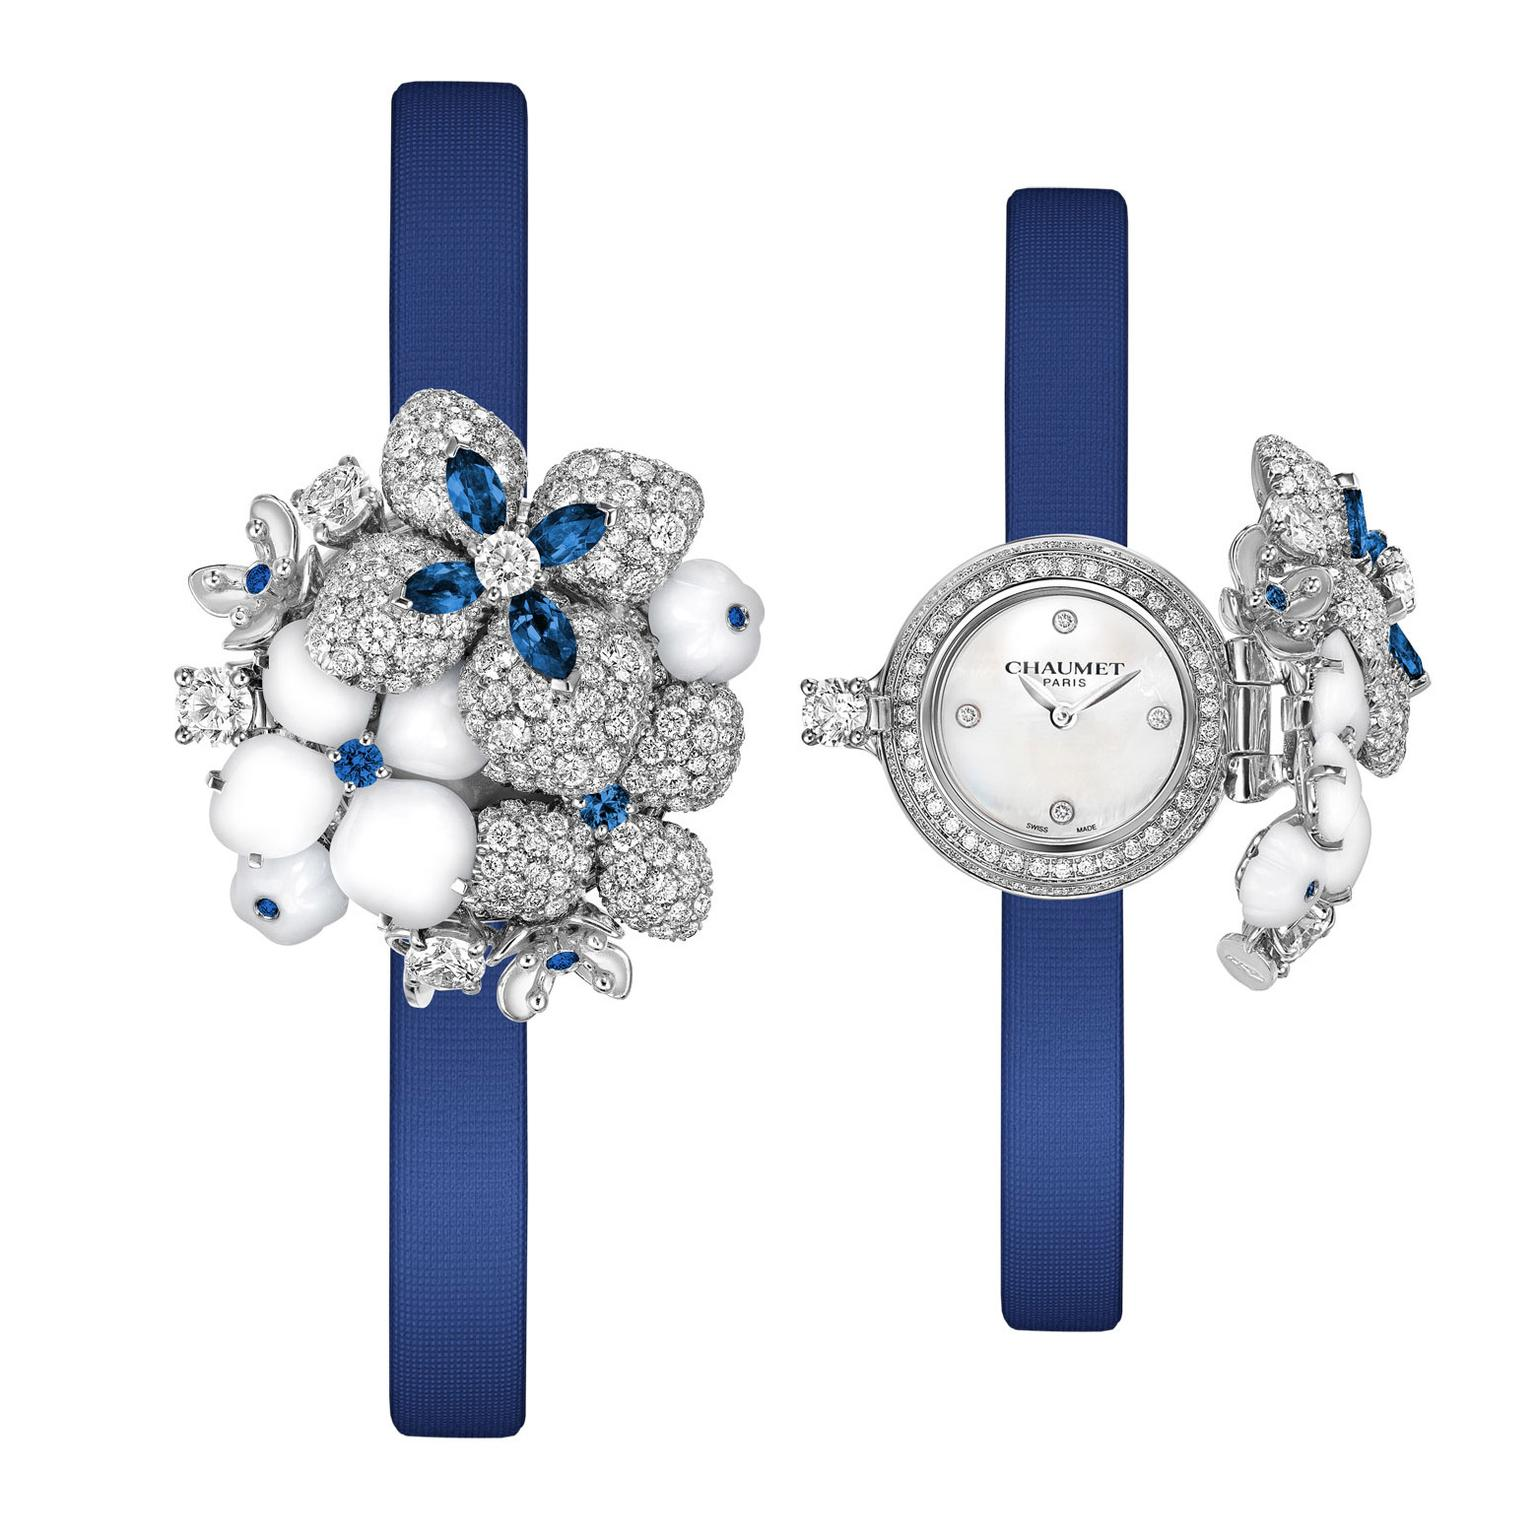 Chaumet Hortensia secret watch